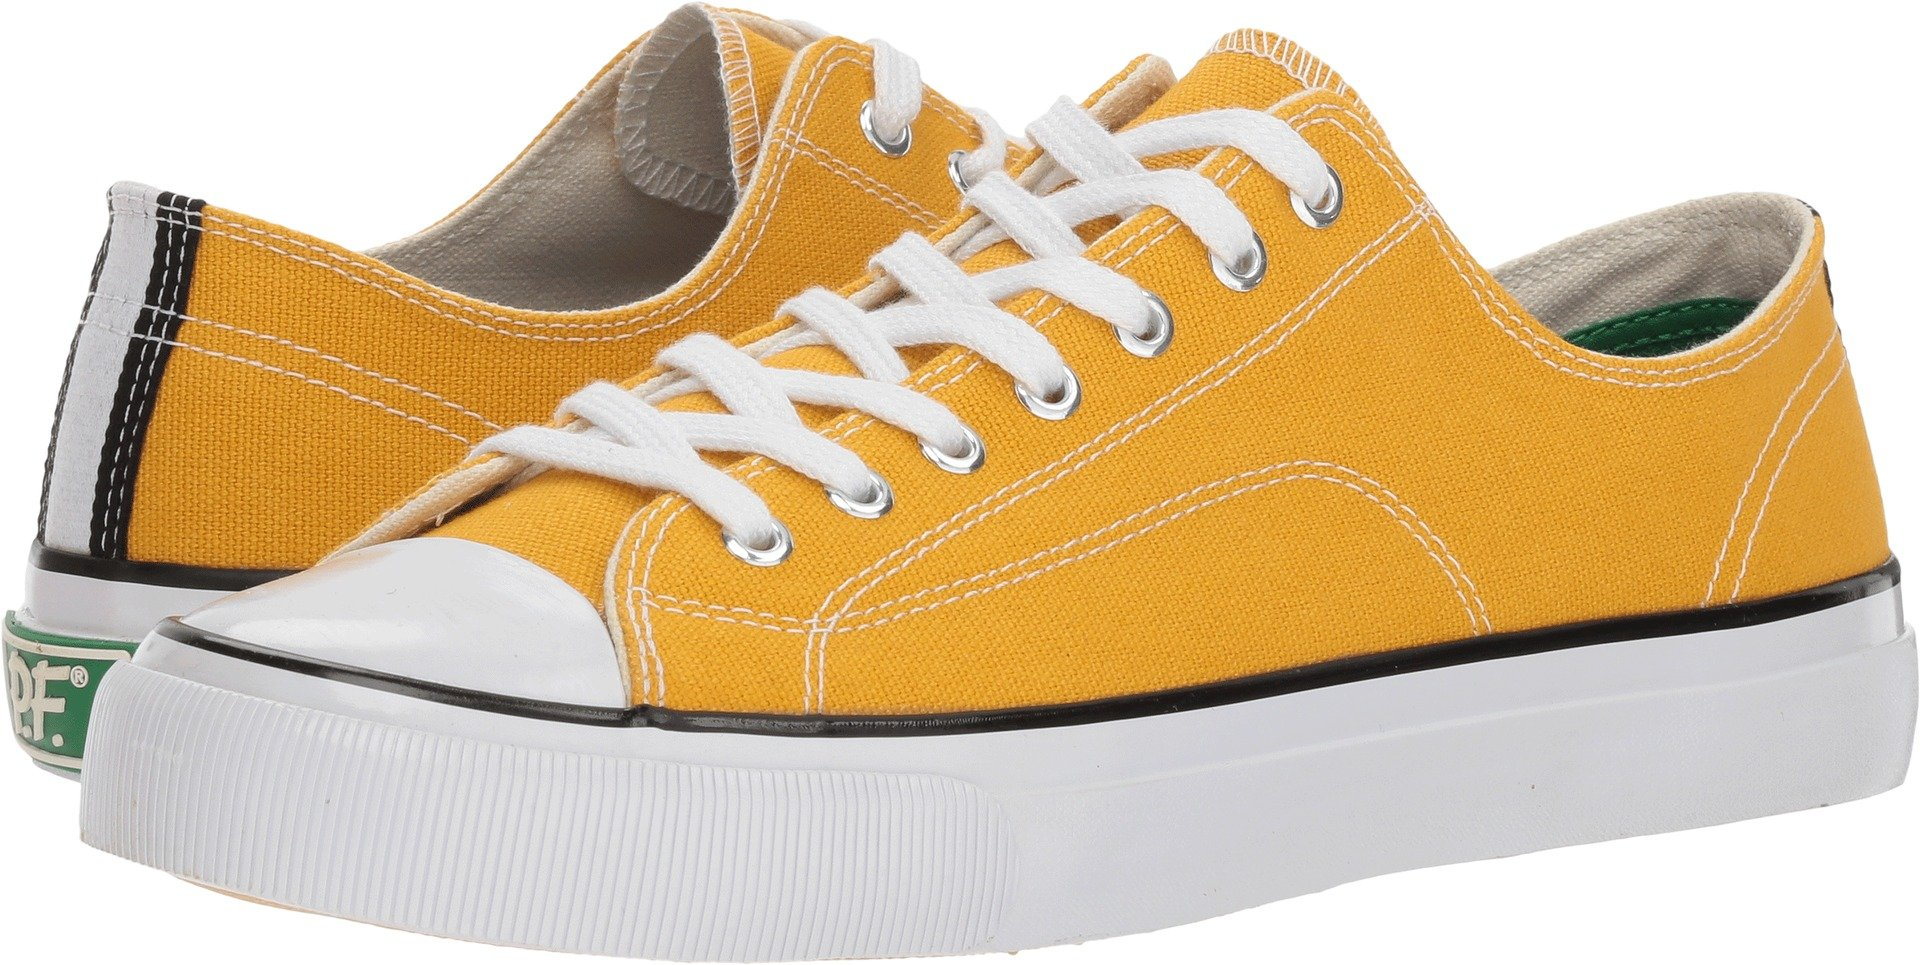 PF Flyers Men's All American Lo Gold Rush 10.5 D US